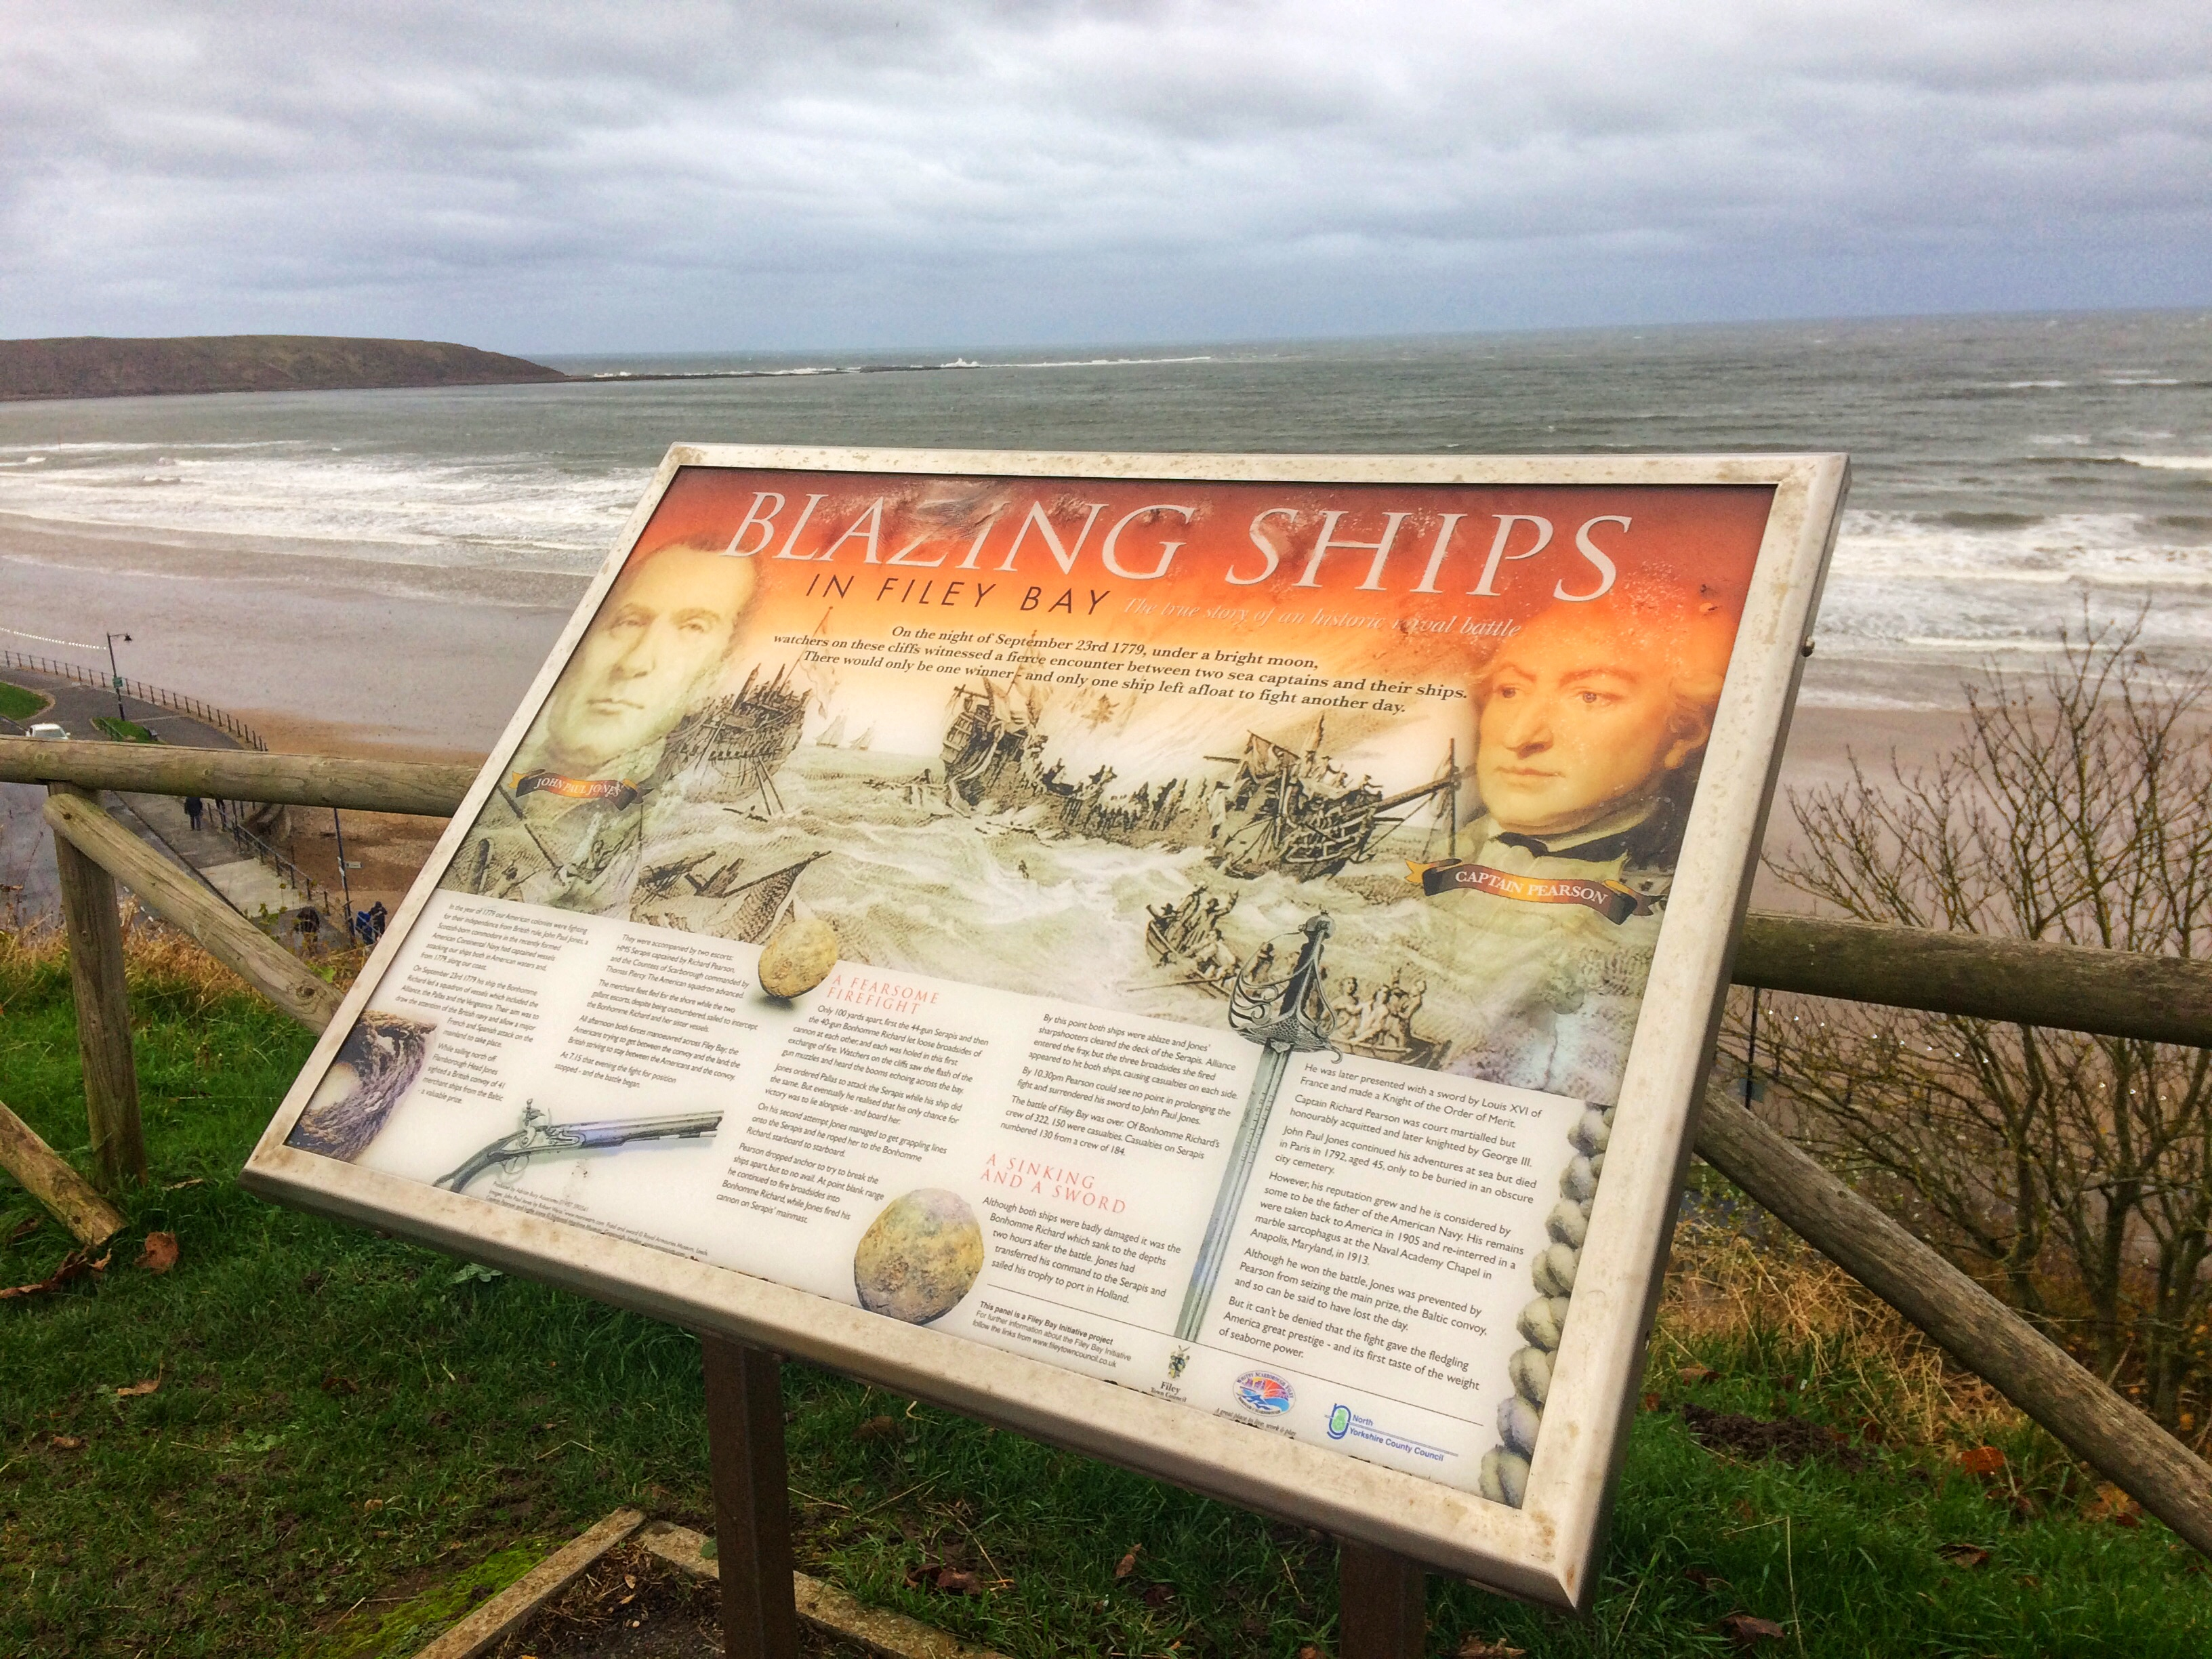 Story board over looking Filey Bay explaining Battle of Flamborough Head